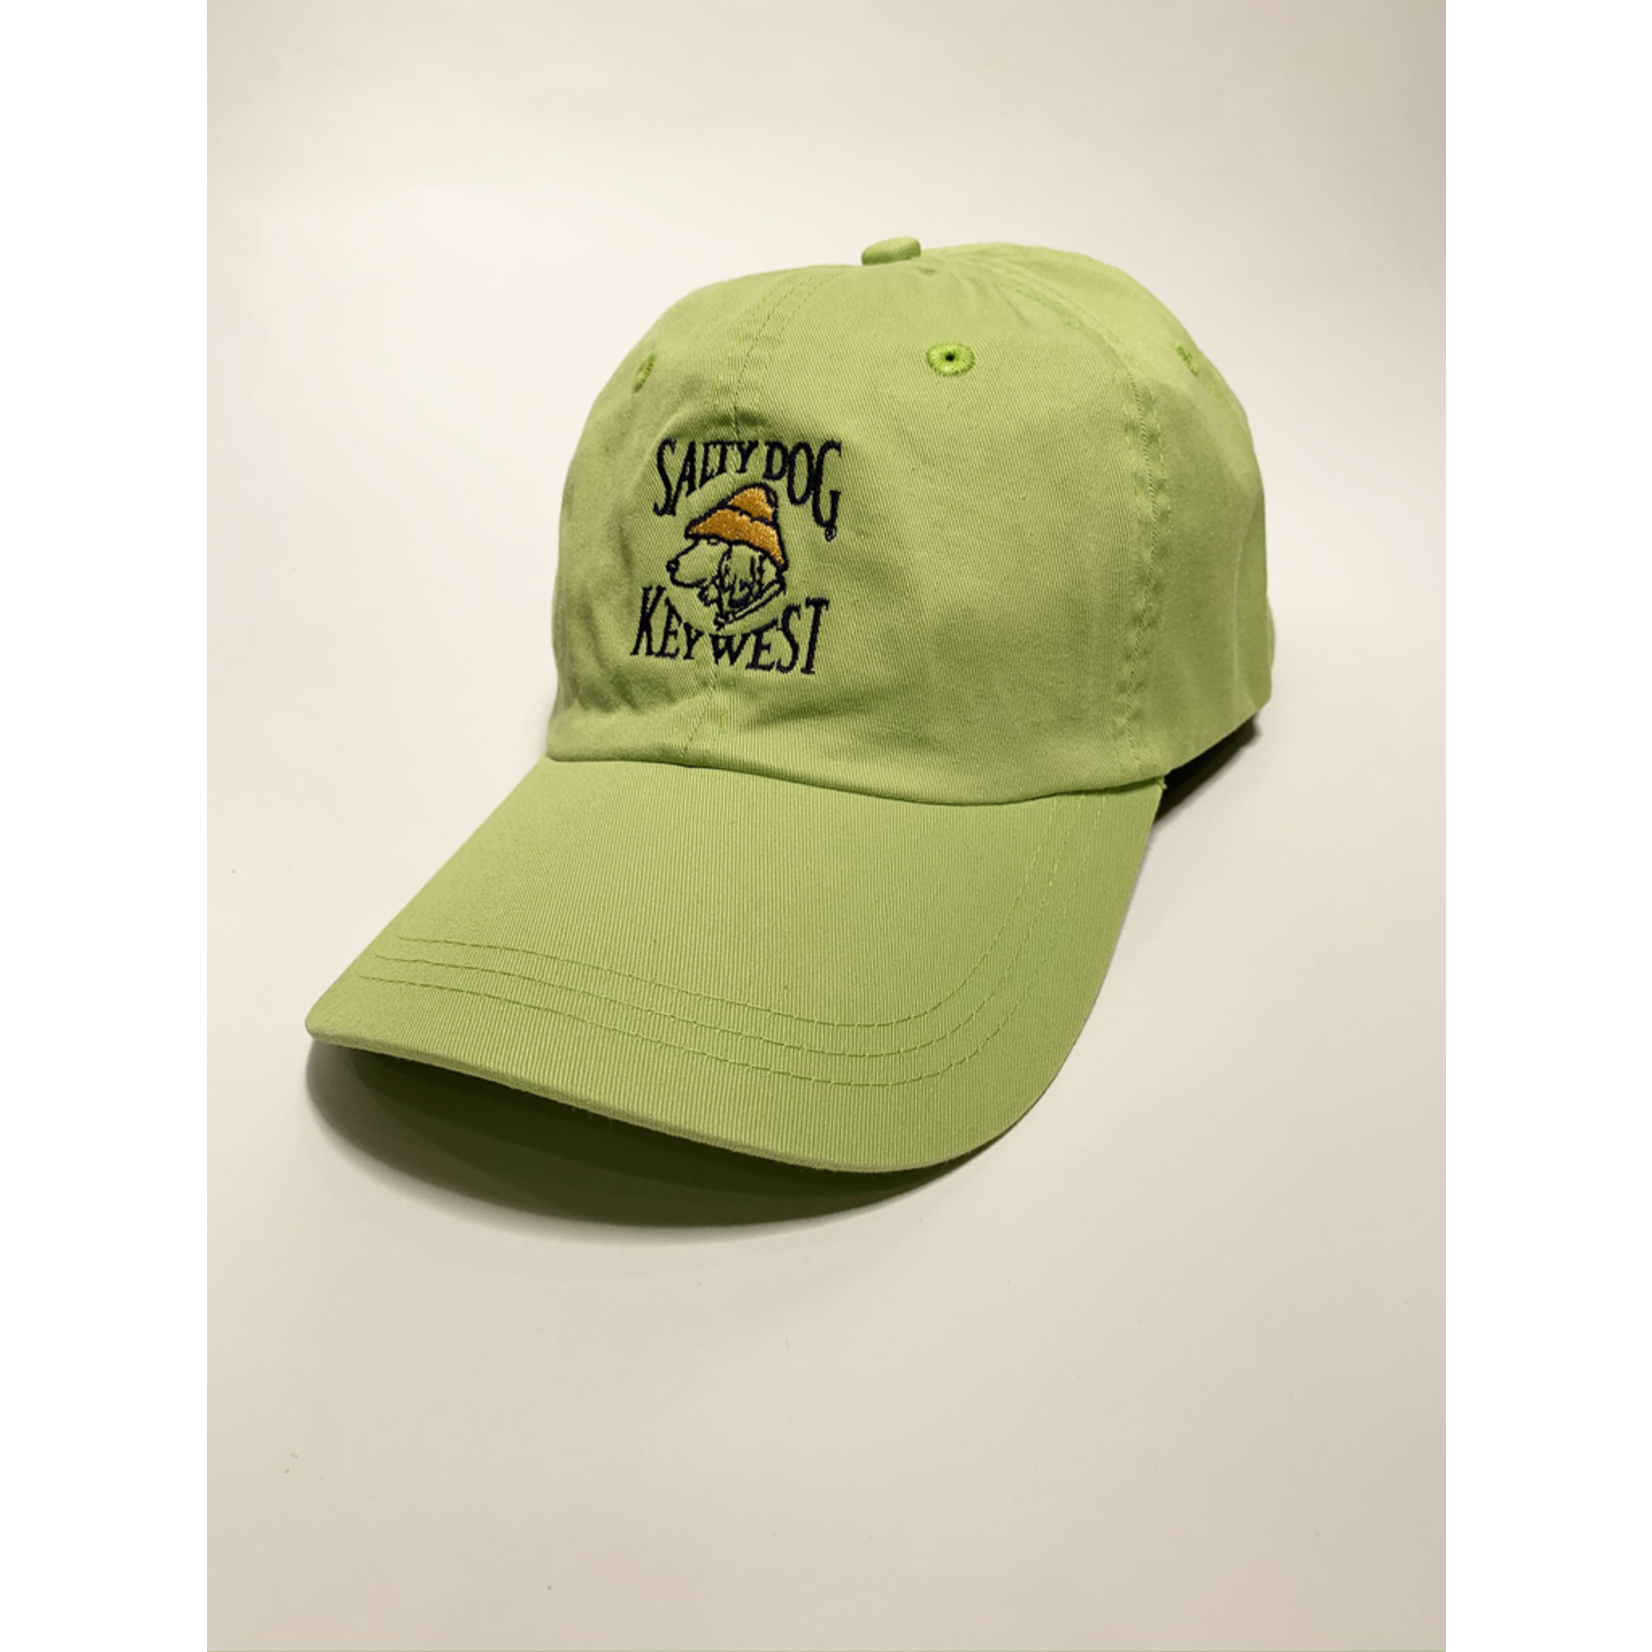 KW Hat - Pigment Dyed, Lime